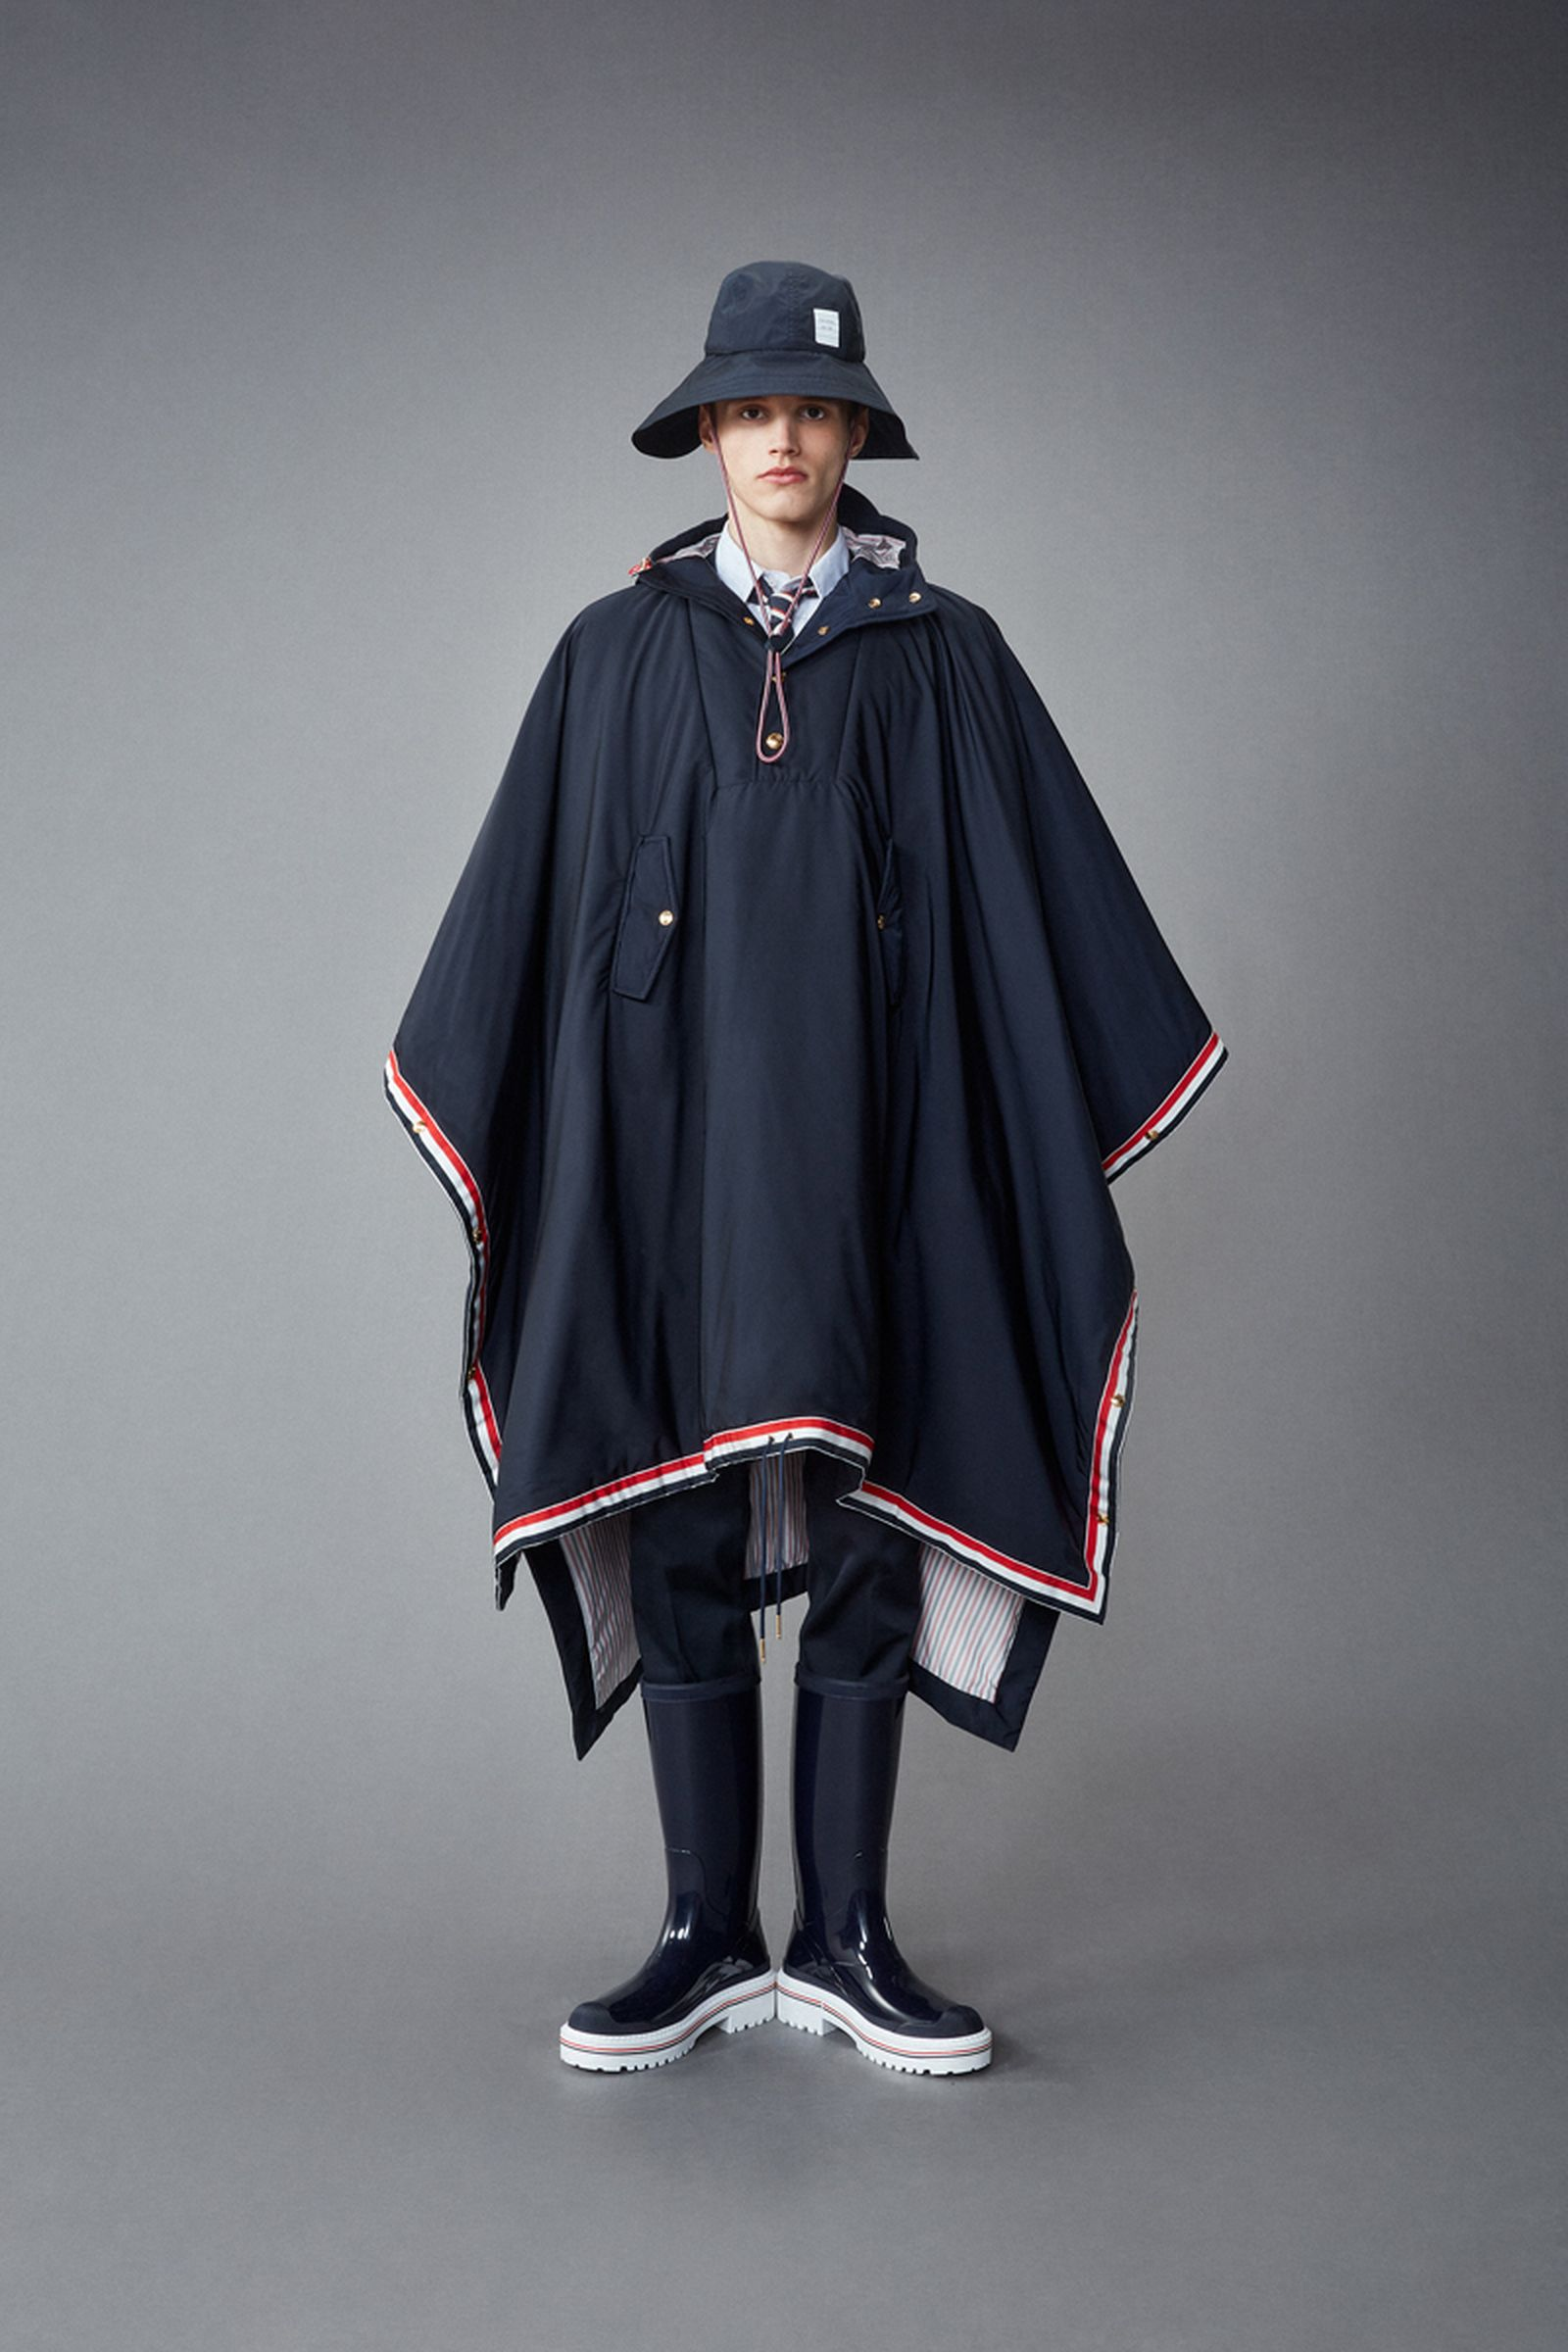 thom-browne-resort-2022-collection- (22)